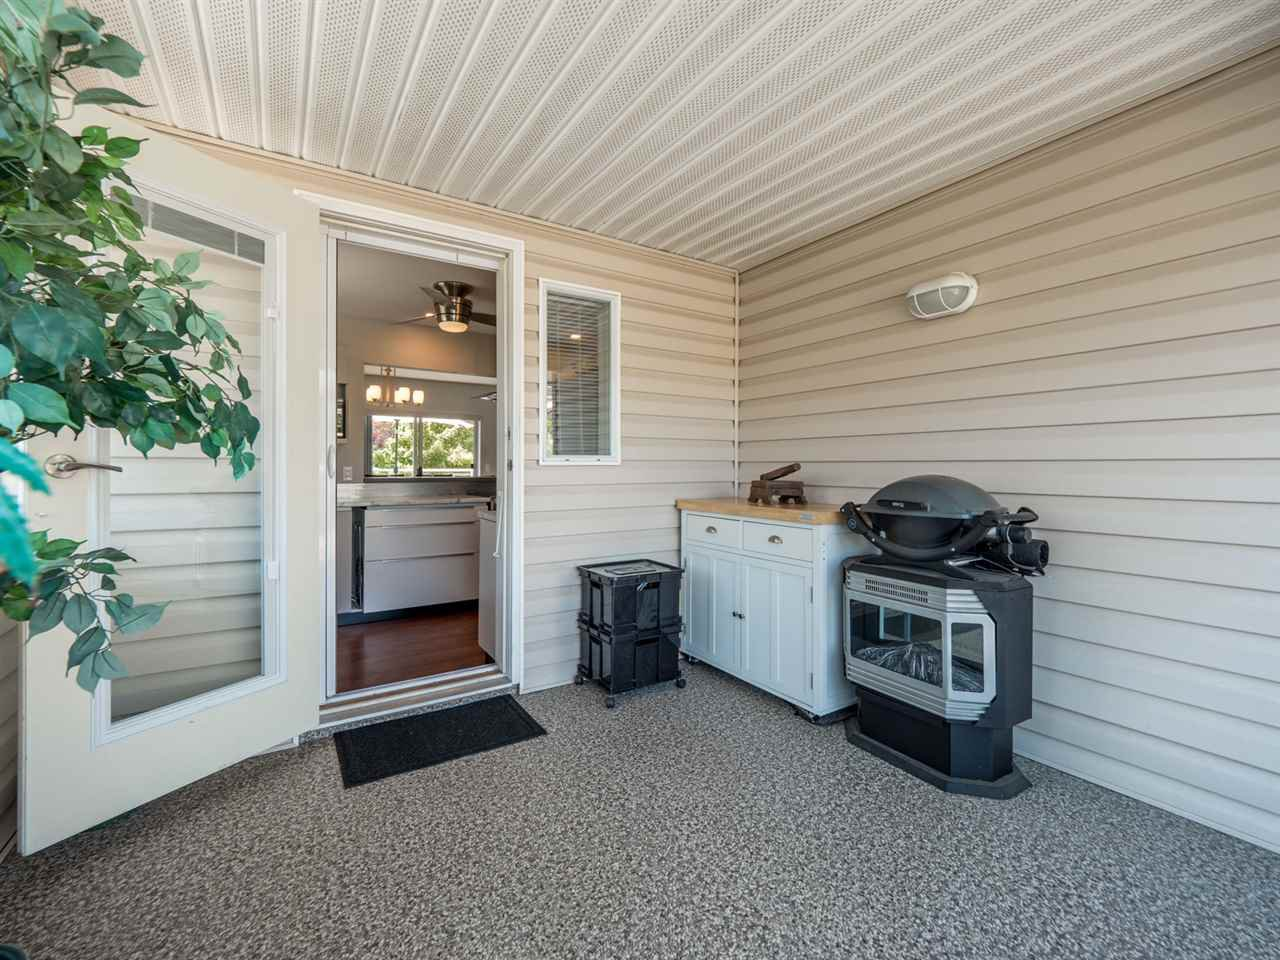 """Photo 16: Photos: 16 5630 TRAIL Avenue in Sechelt: Sechelt District Townhouse for sale in """"HIGHPOINT"""" (Sunshine Coast)  : MLS®# R2382780"""